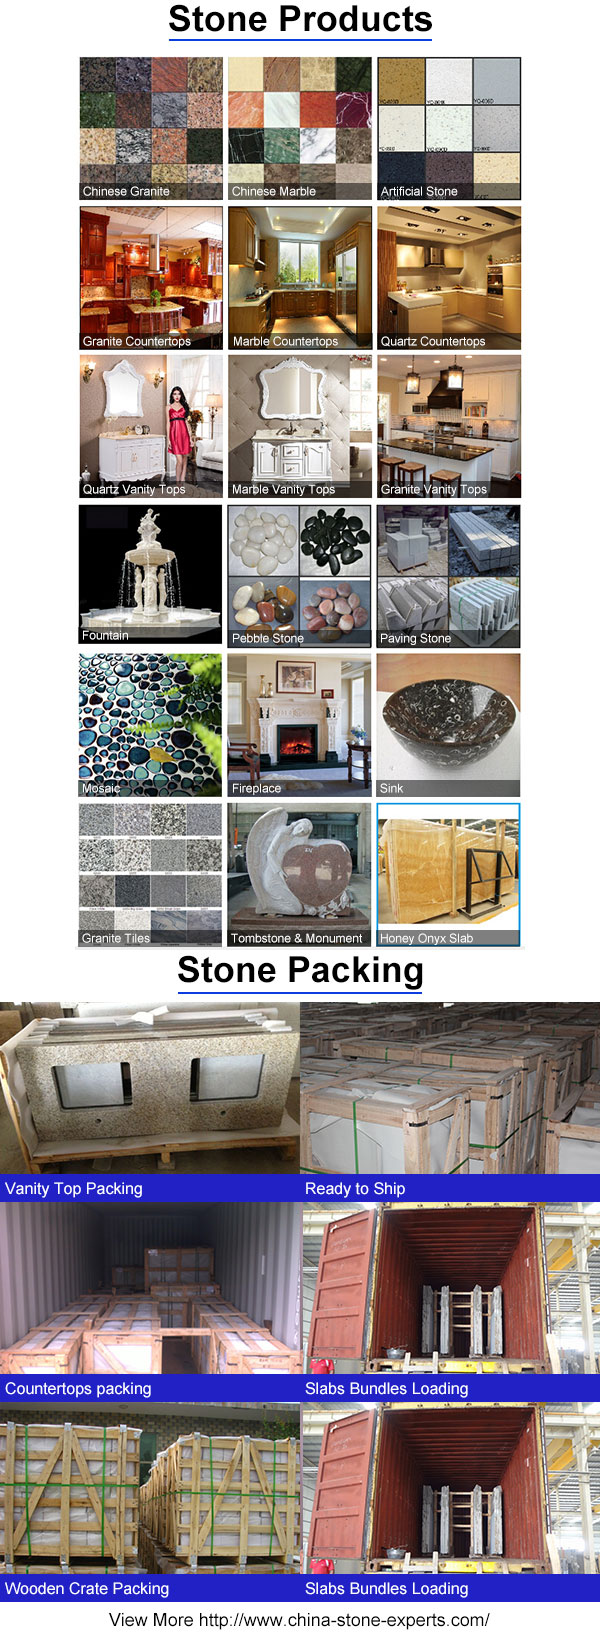 A02Stone Products+Packing.jpg